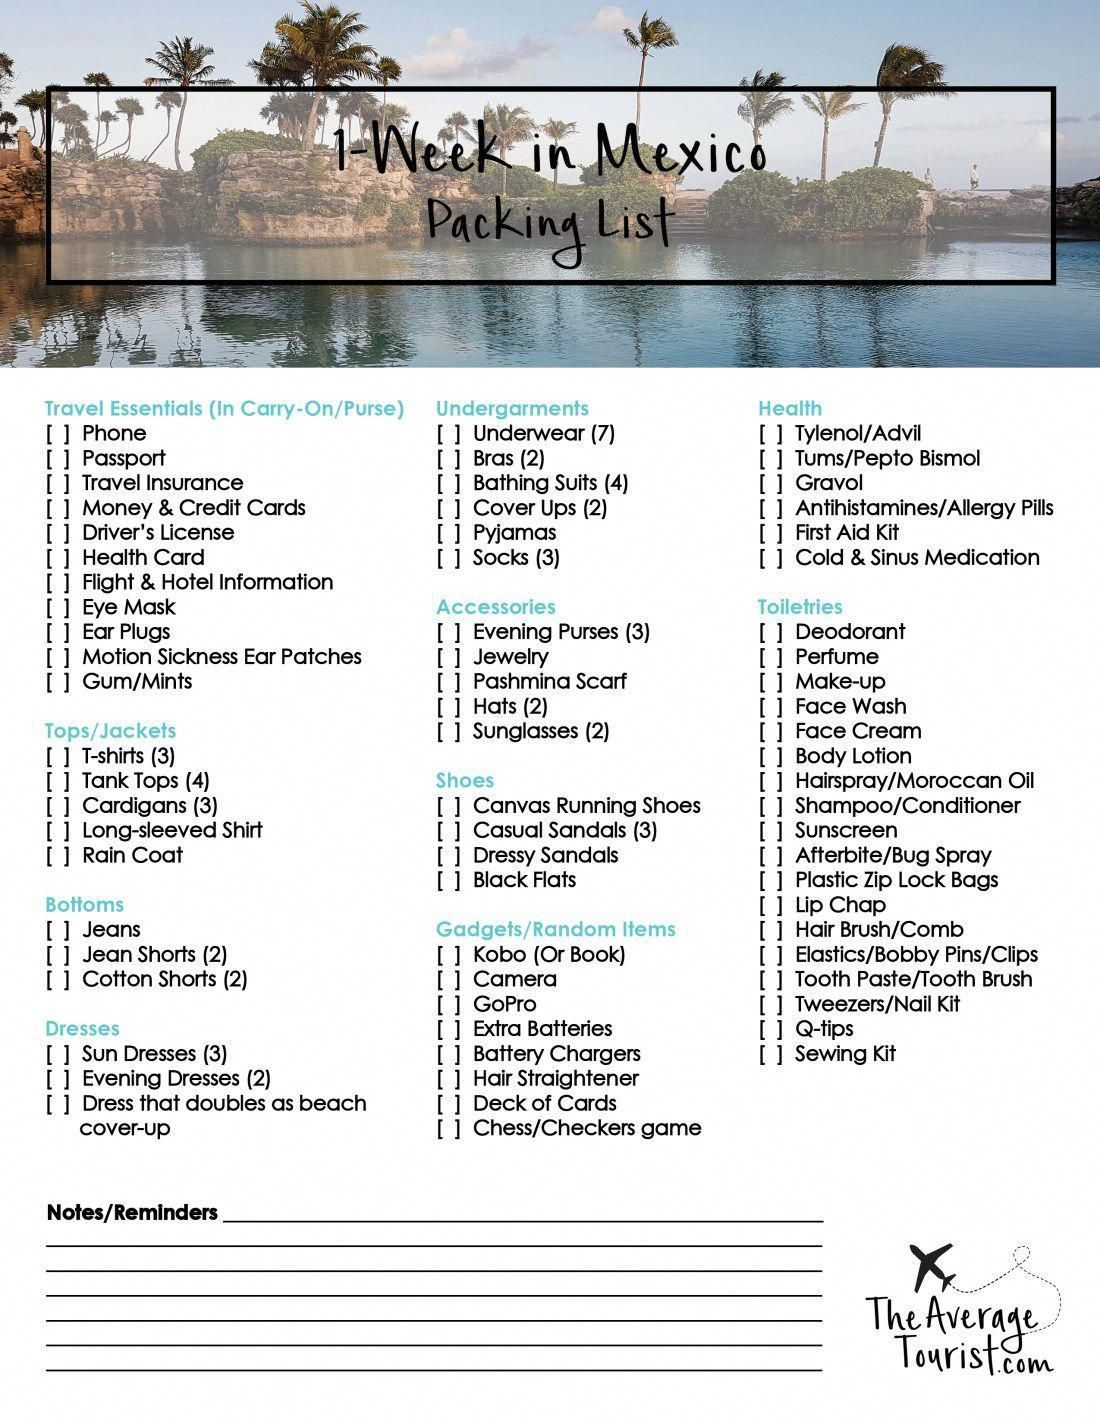 Beach vacation rental house packing list. While lots of us wish to be safe in terms of packing, it is important to choose the clothing carefully. Points from your traveling pros - make use of these on your visits!. #Beachvacationmexico #beachvacationclothes